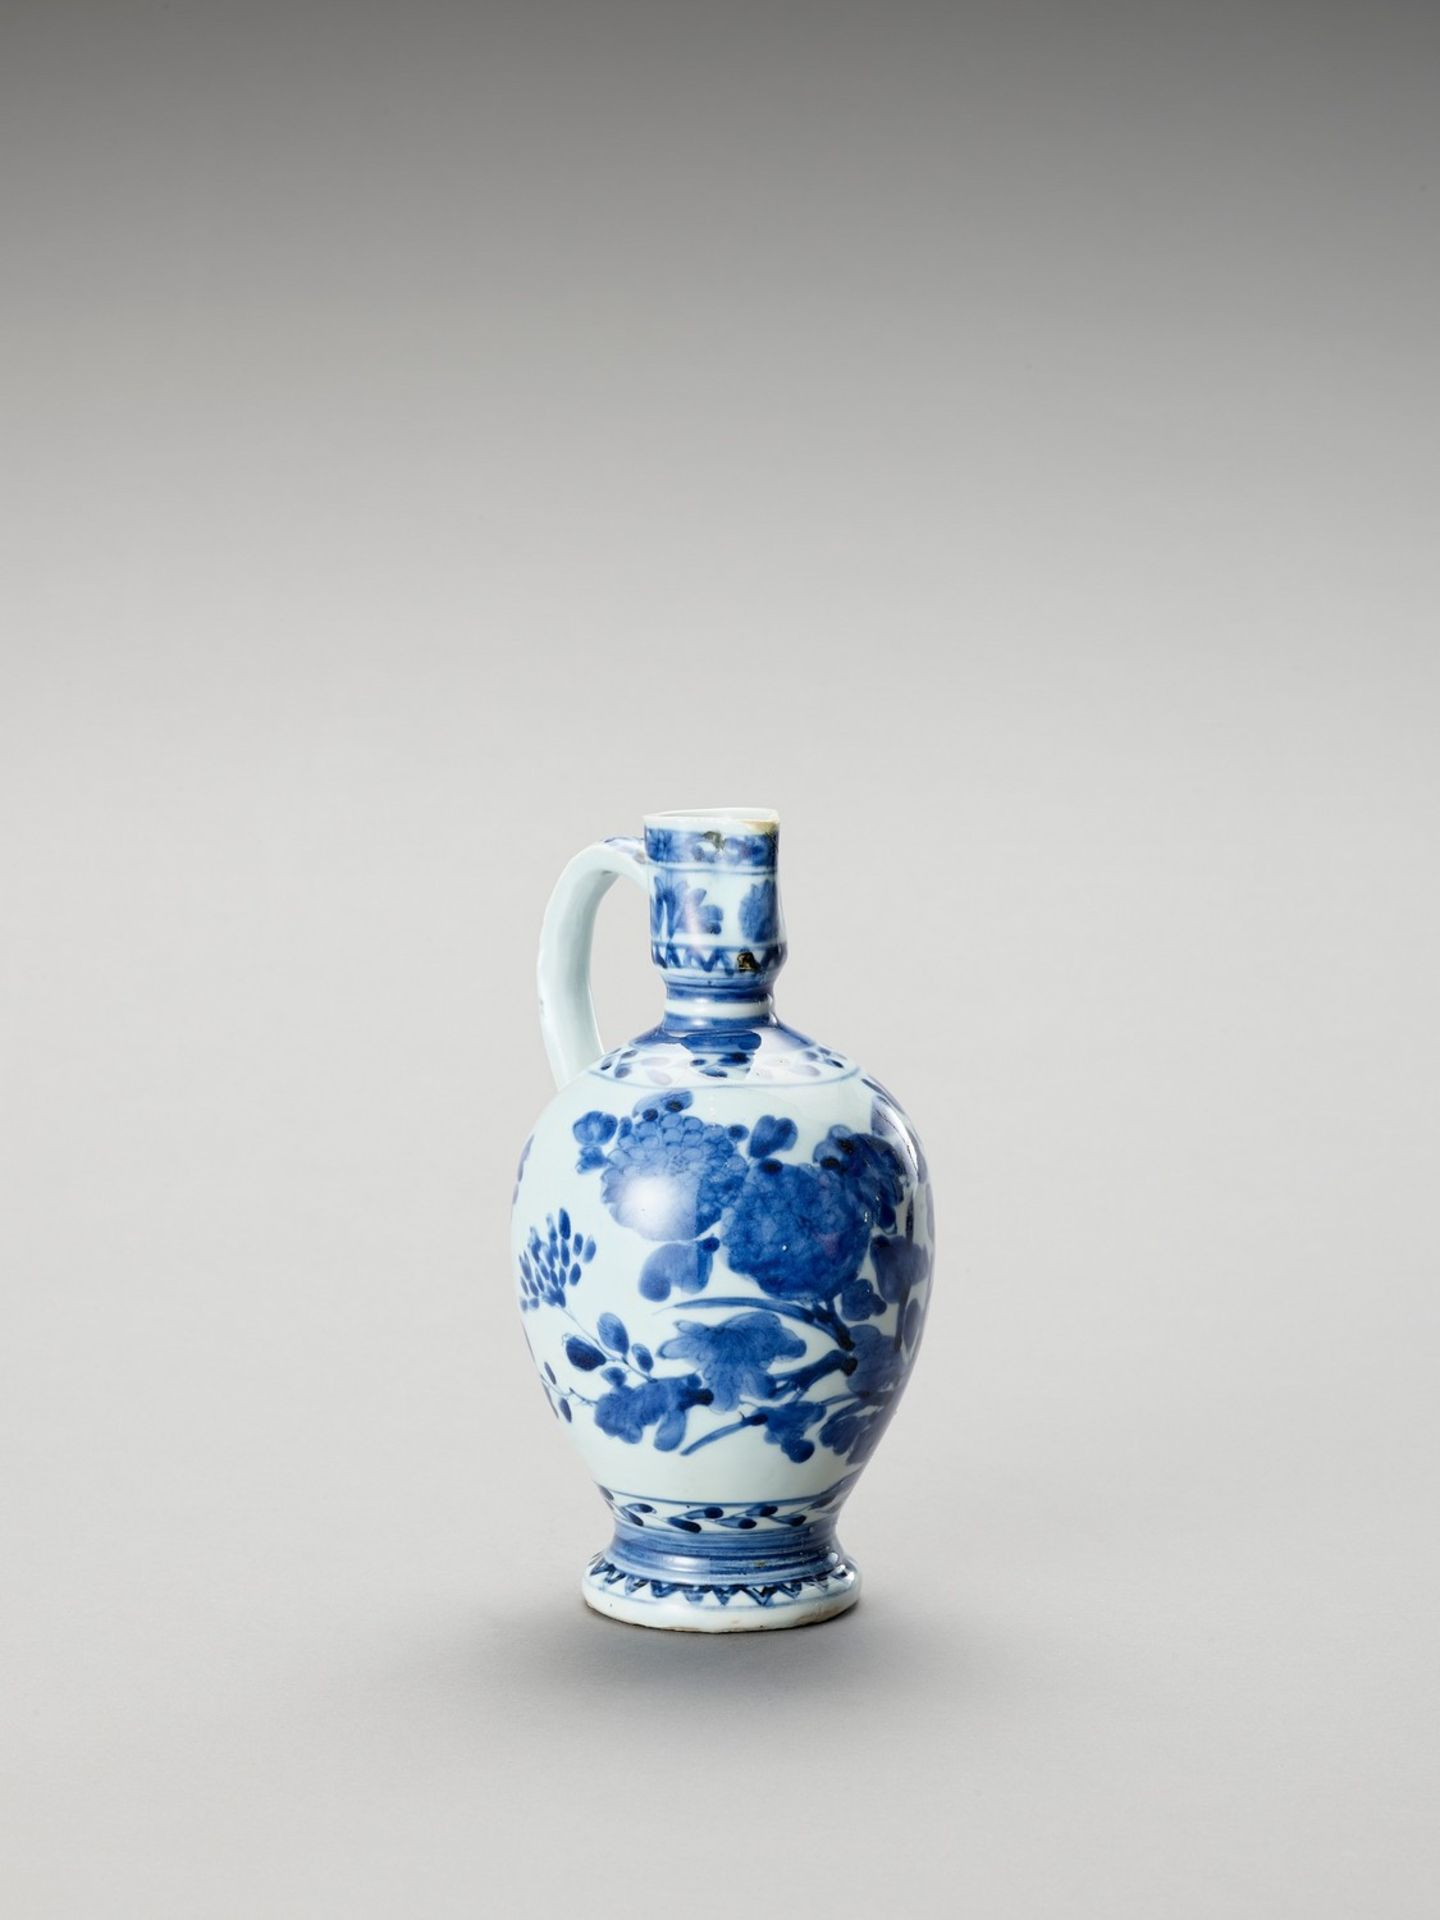 A BLUE AND WHITE PORCELAIN JUG - Image 3 of 7